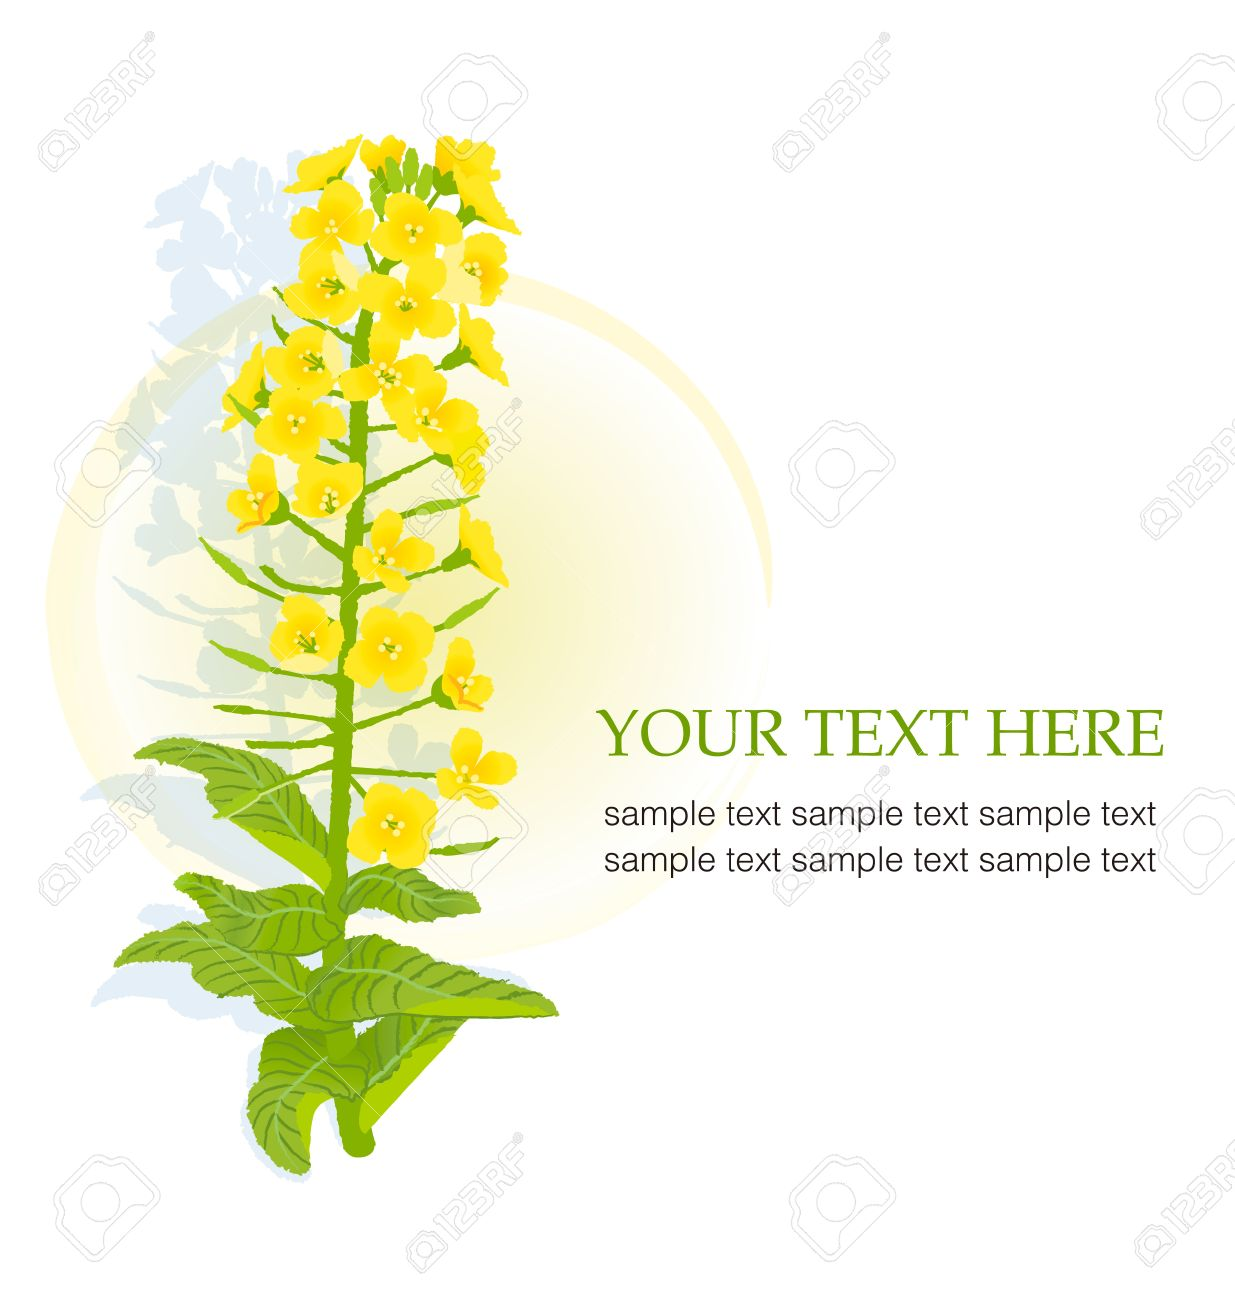 Canola clipart #4, Download drawings